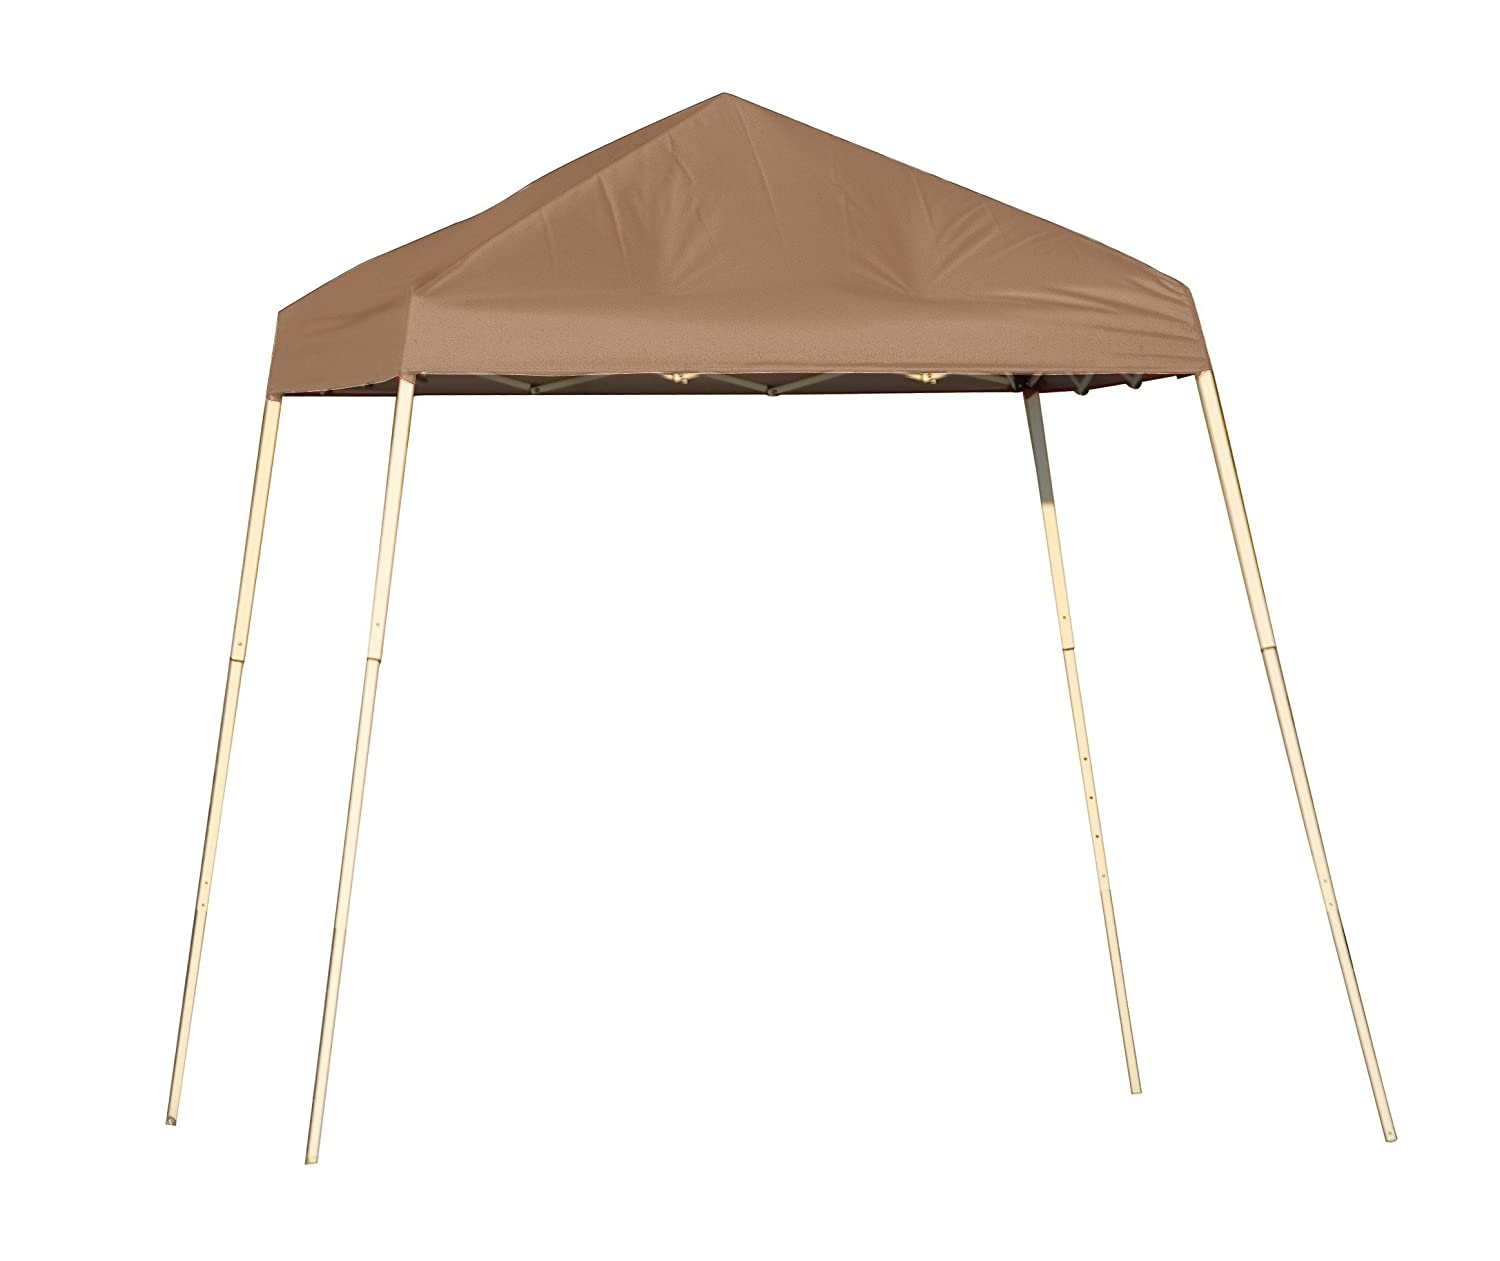 sc 1 st  Amazon.com & Amazon.com: ShelterLogic Slant Leg Pop Up Canopy: Sports u0026 Outdoors